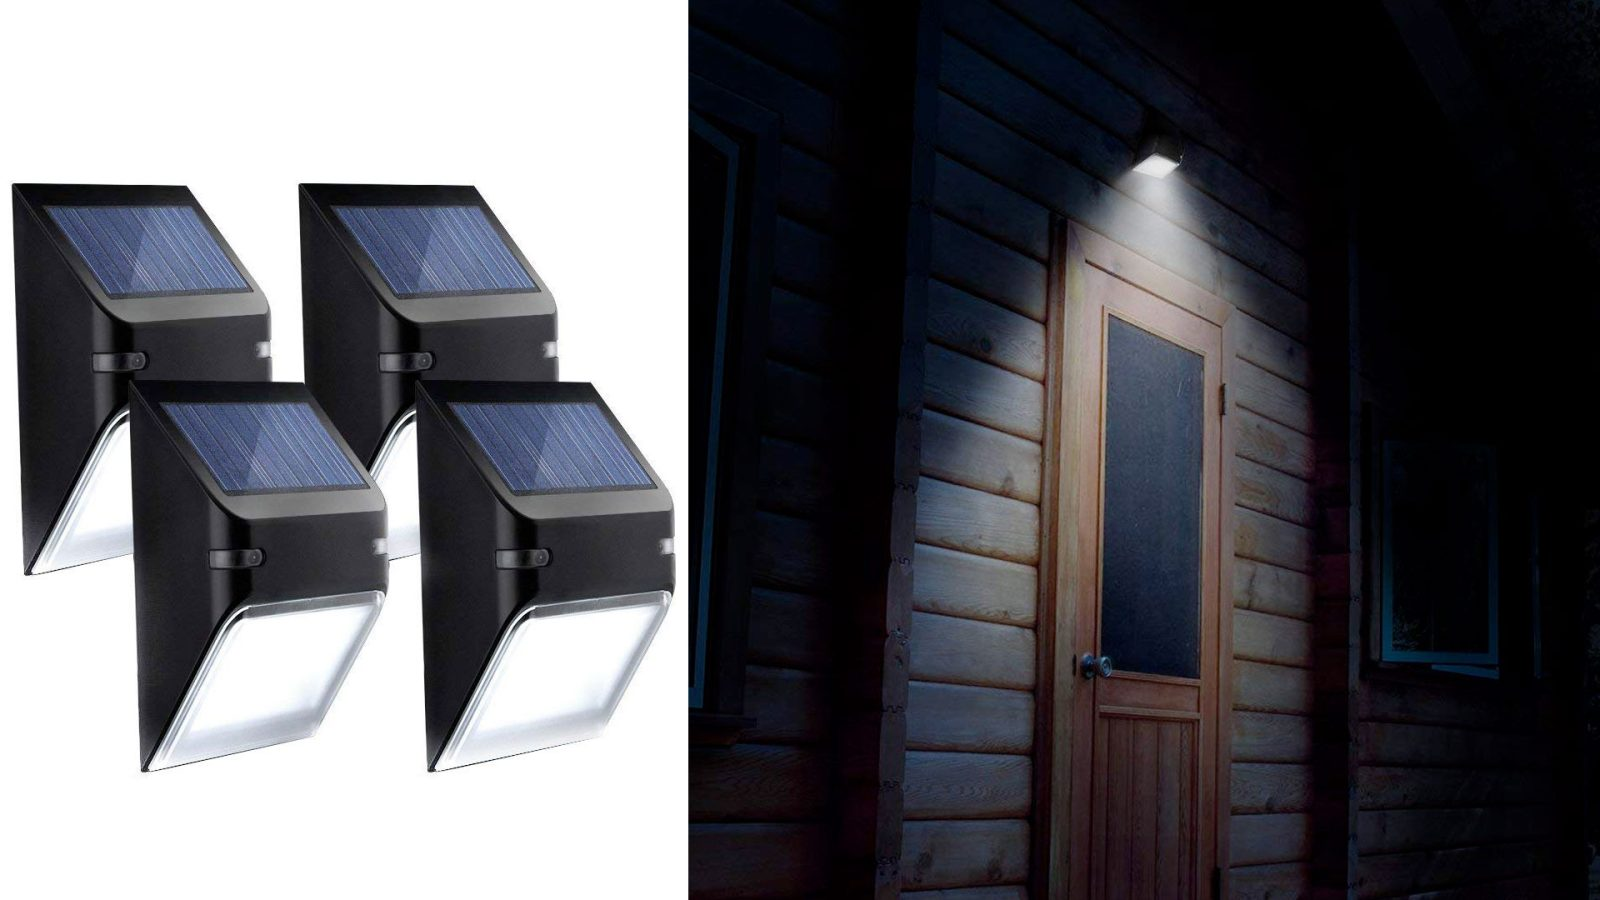 medium resolution of illuminate your yard without wires by using this 4 pack of solar lights for just 10 shipped